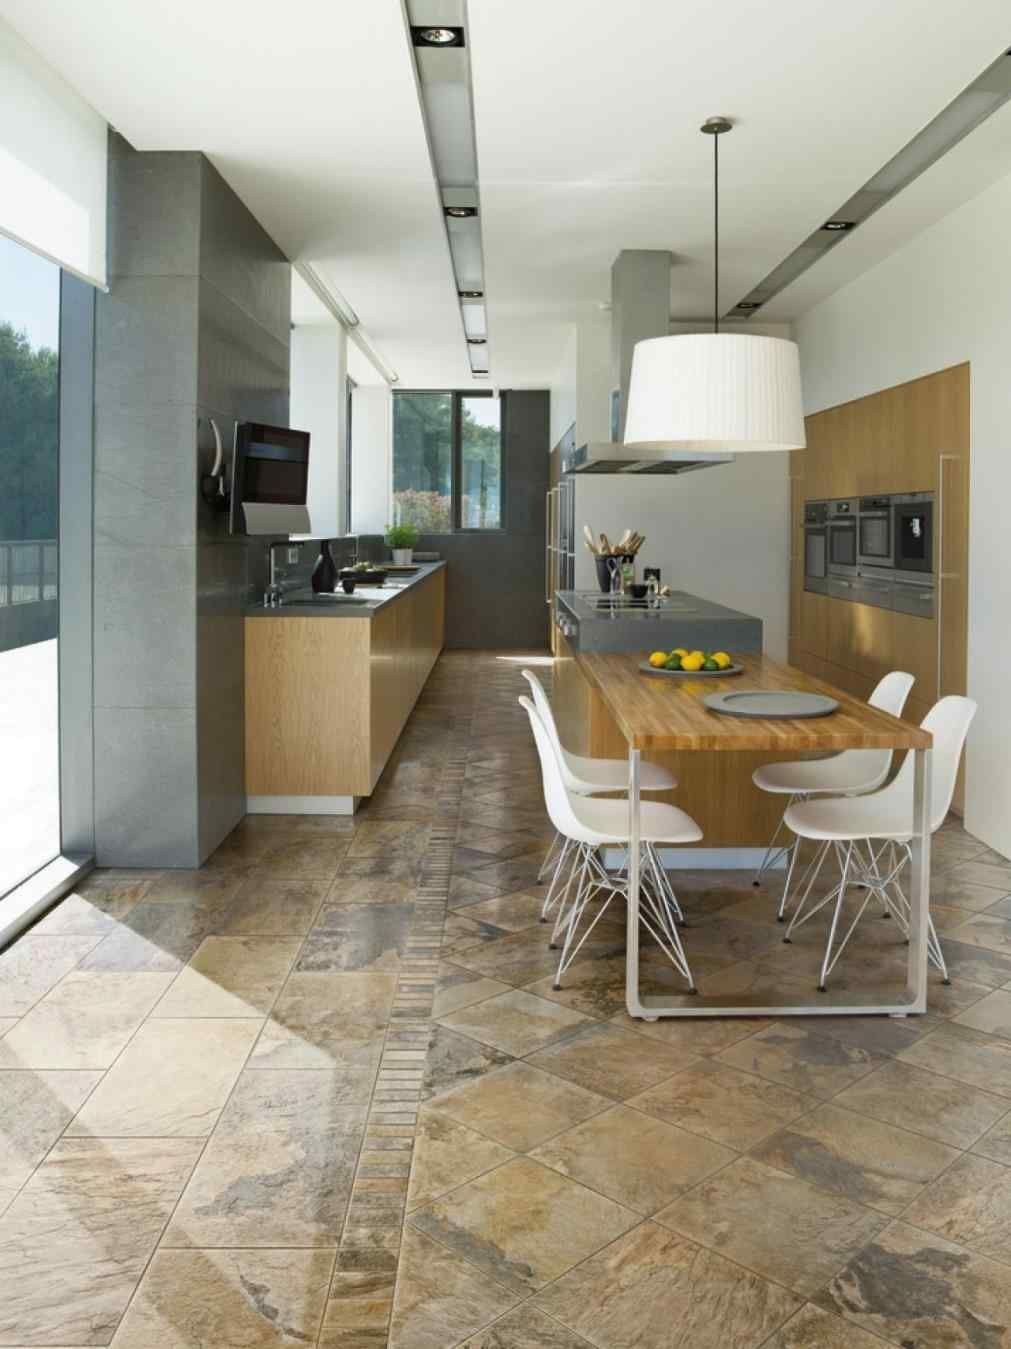 Outstanding 15 Beautiful And Best Tiles For Home Flooring Ideas Https Breakpr